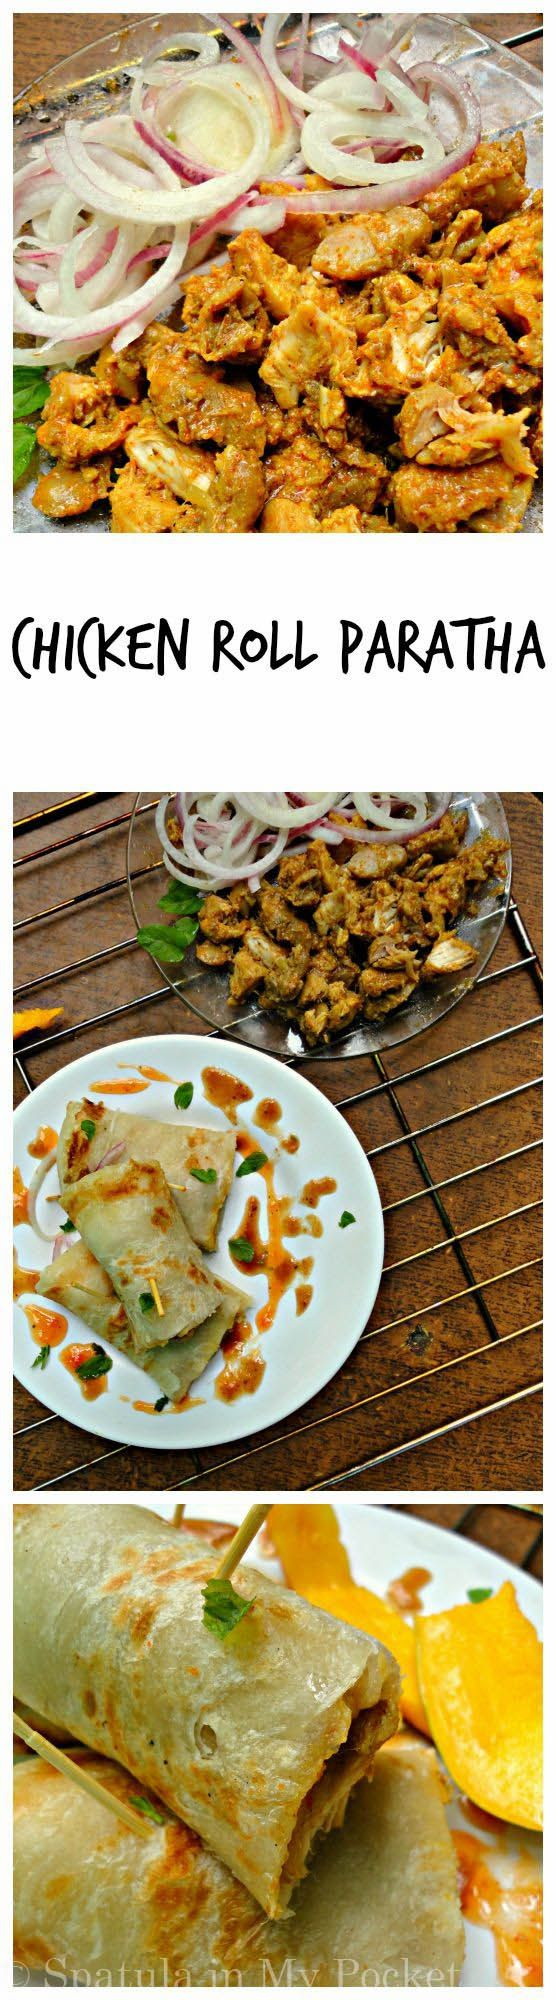 Bihari Chicken Roll Parathas